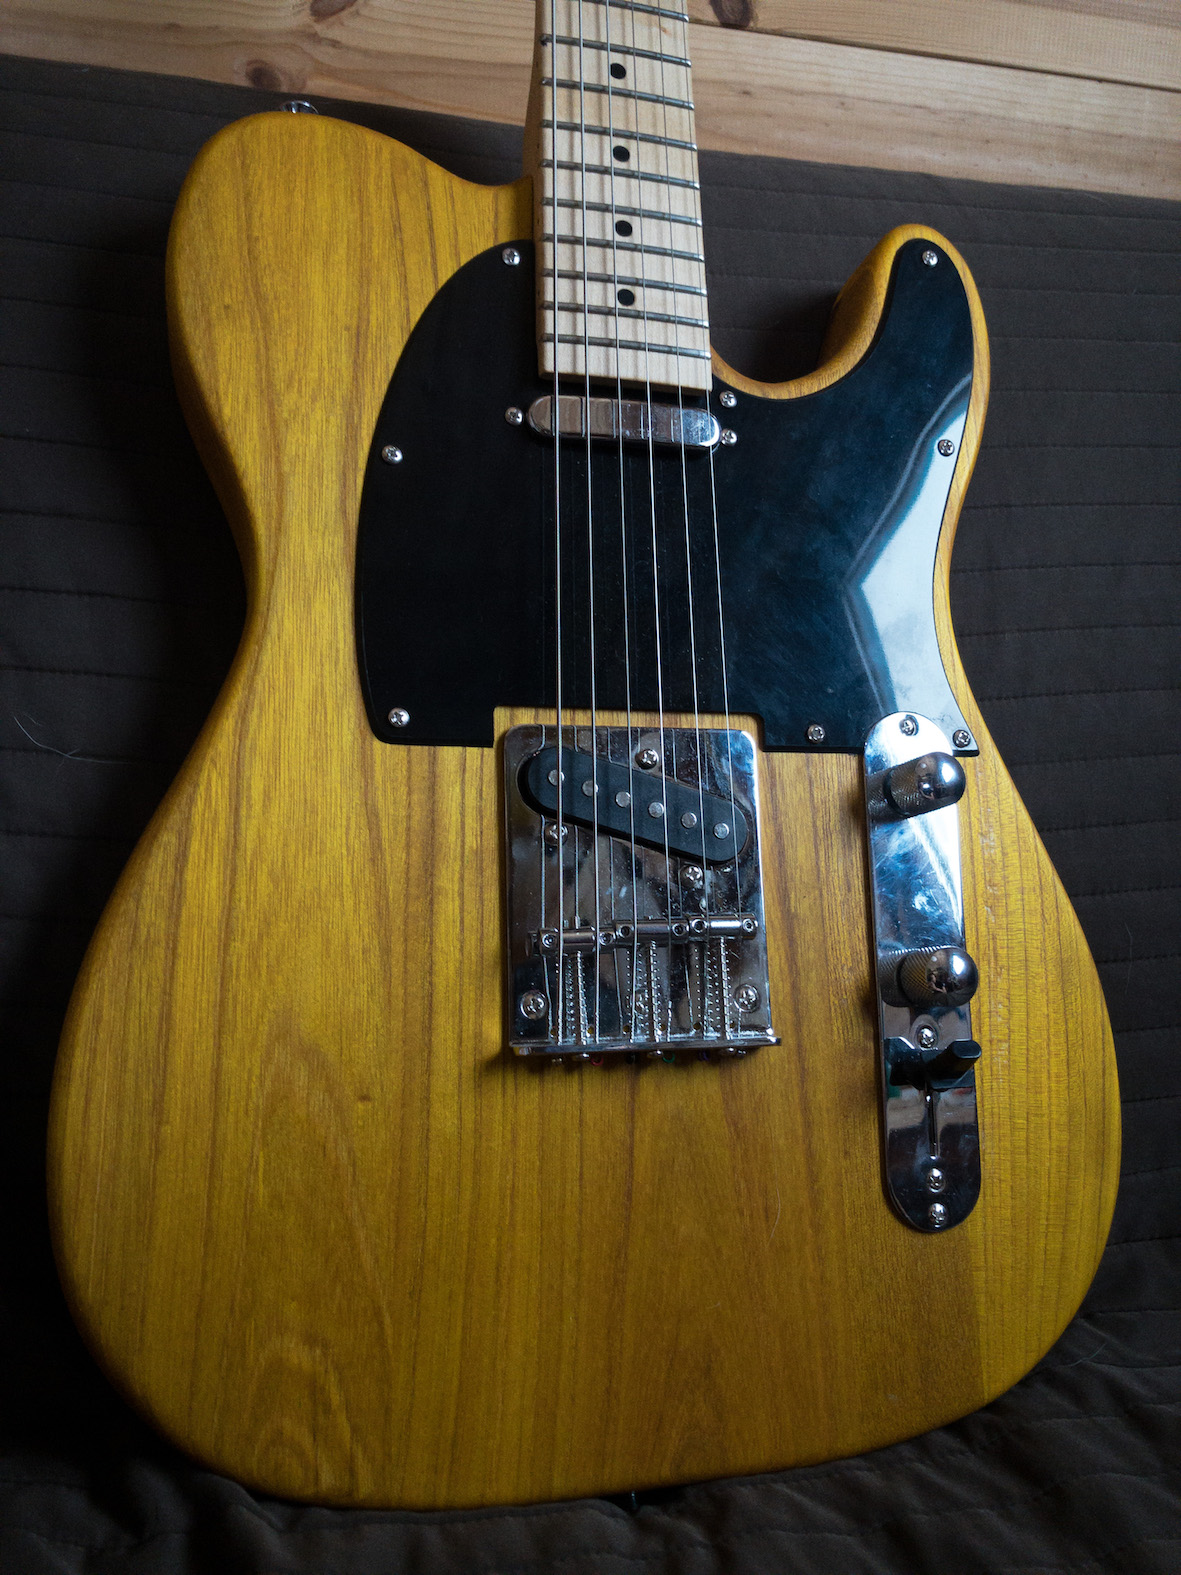 Telecaster Love Thread, No Archtops Allowed-apc_2300-jpg